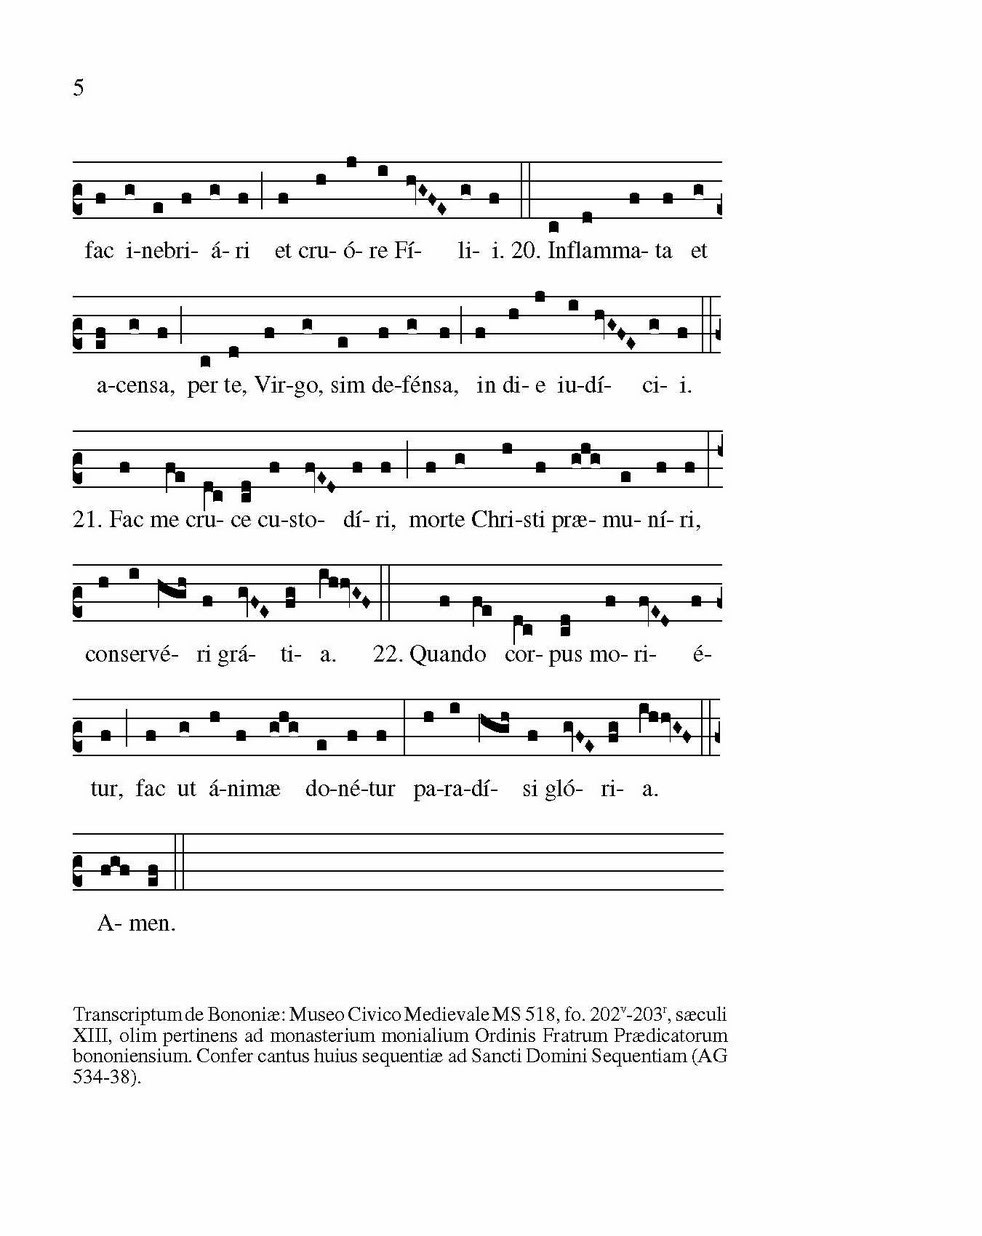 New liturgical movement recent discoveries on the origins of the images of the newly discovered 13th century stabat mater i am aware that these images are a bit blurry if you click on them or download them fandeluxe Choice Image